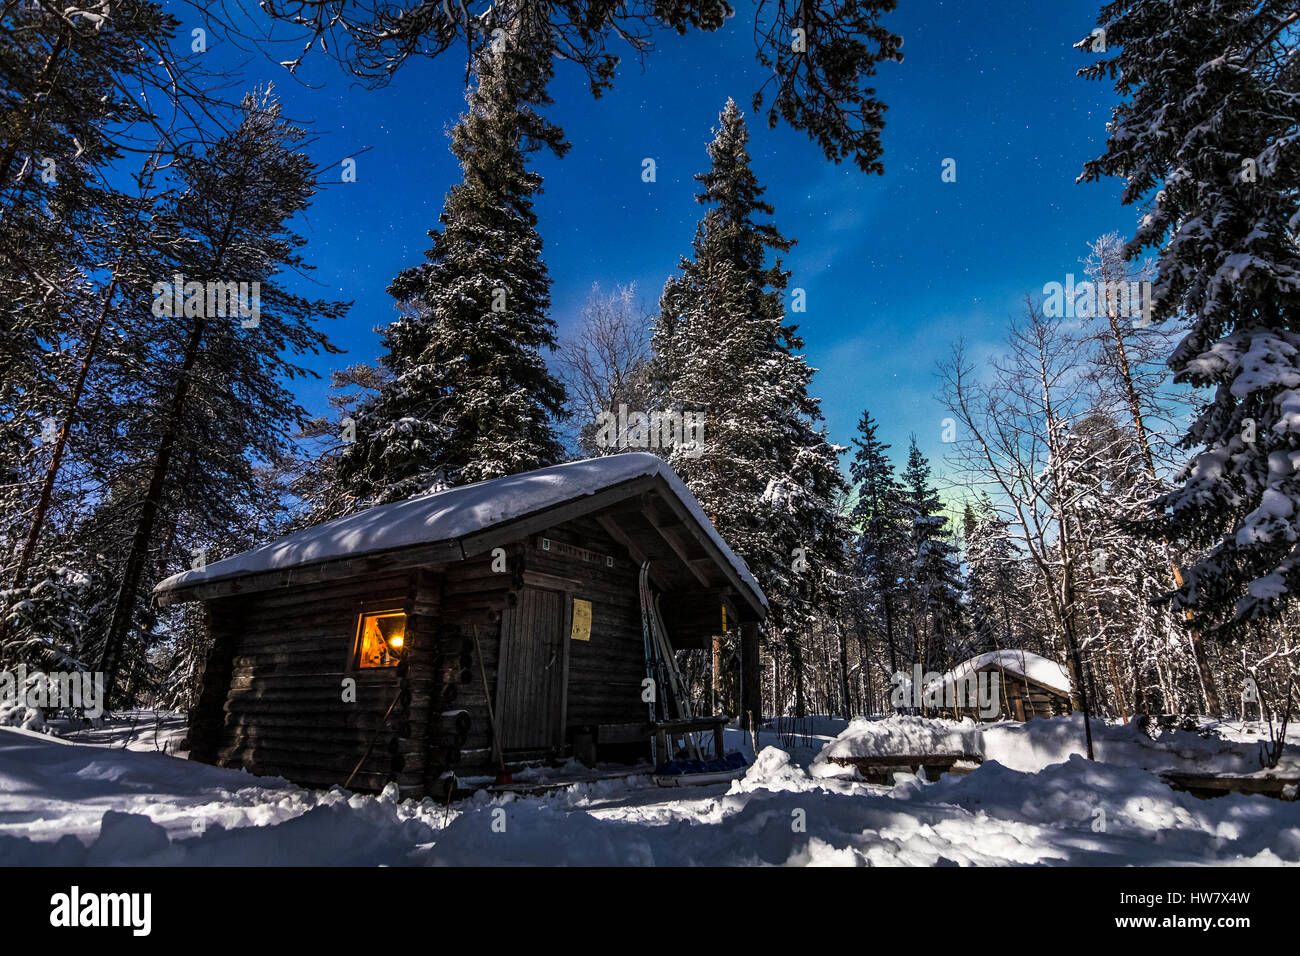 Hut in the woods - Stock Image